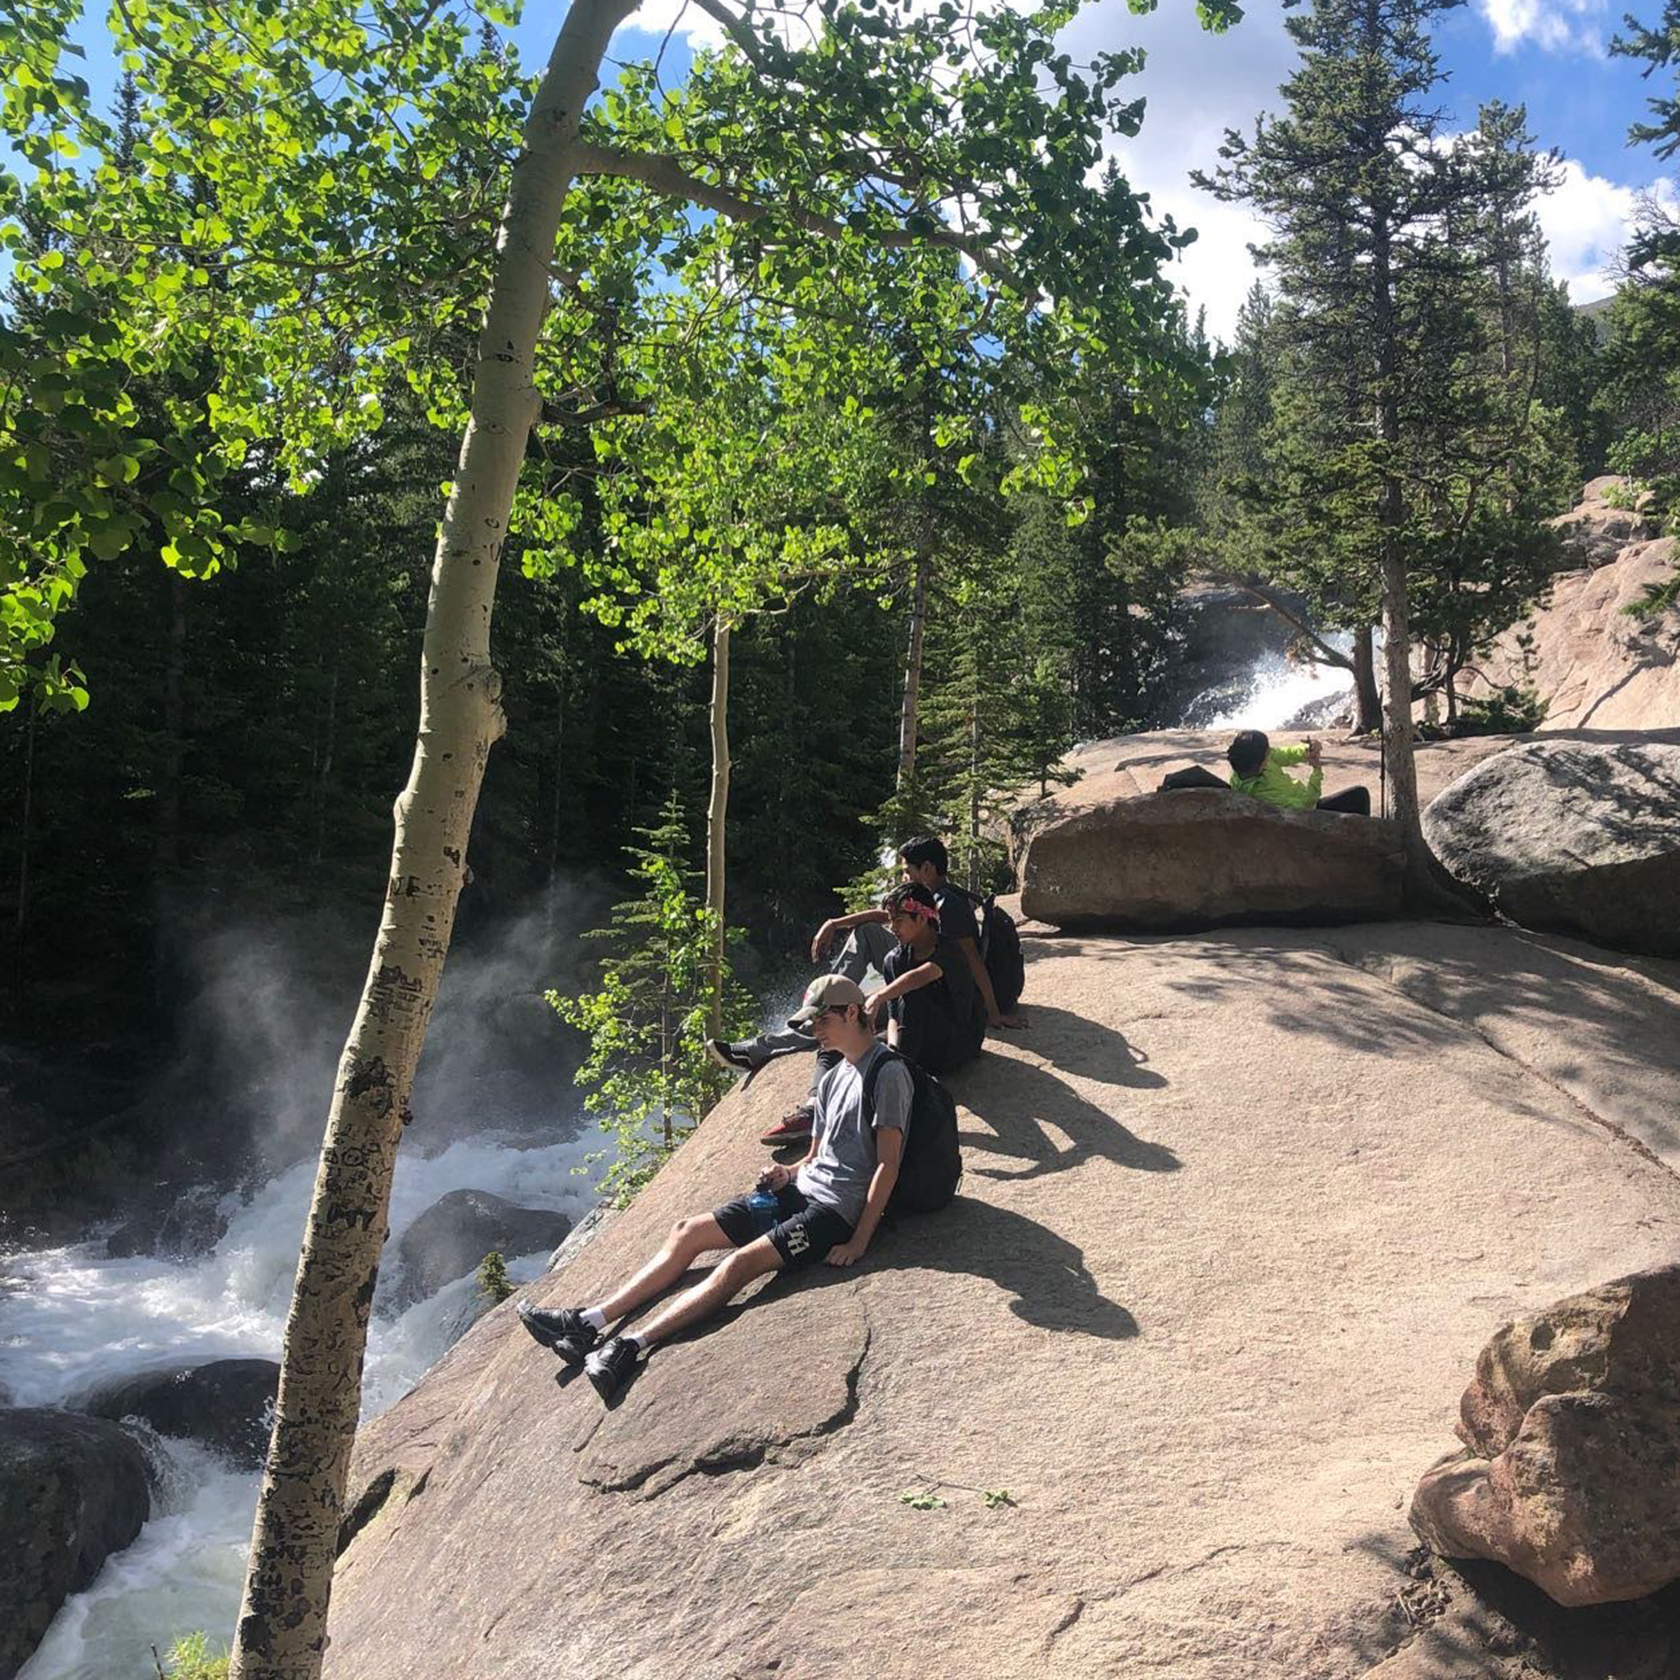 Travelers sitting on rocks above a raging river in The Rockies